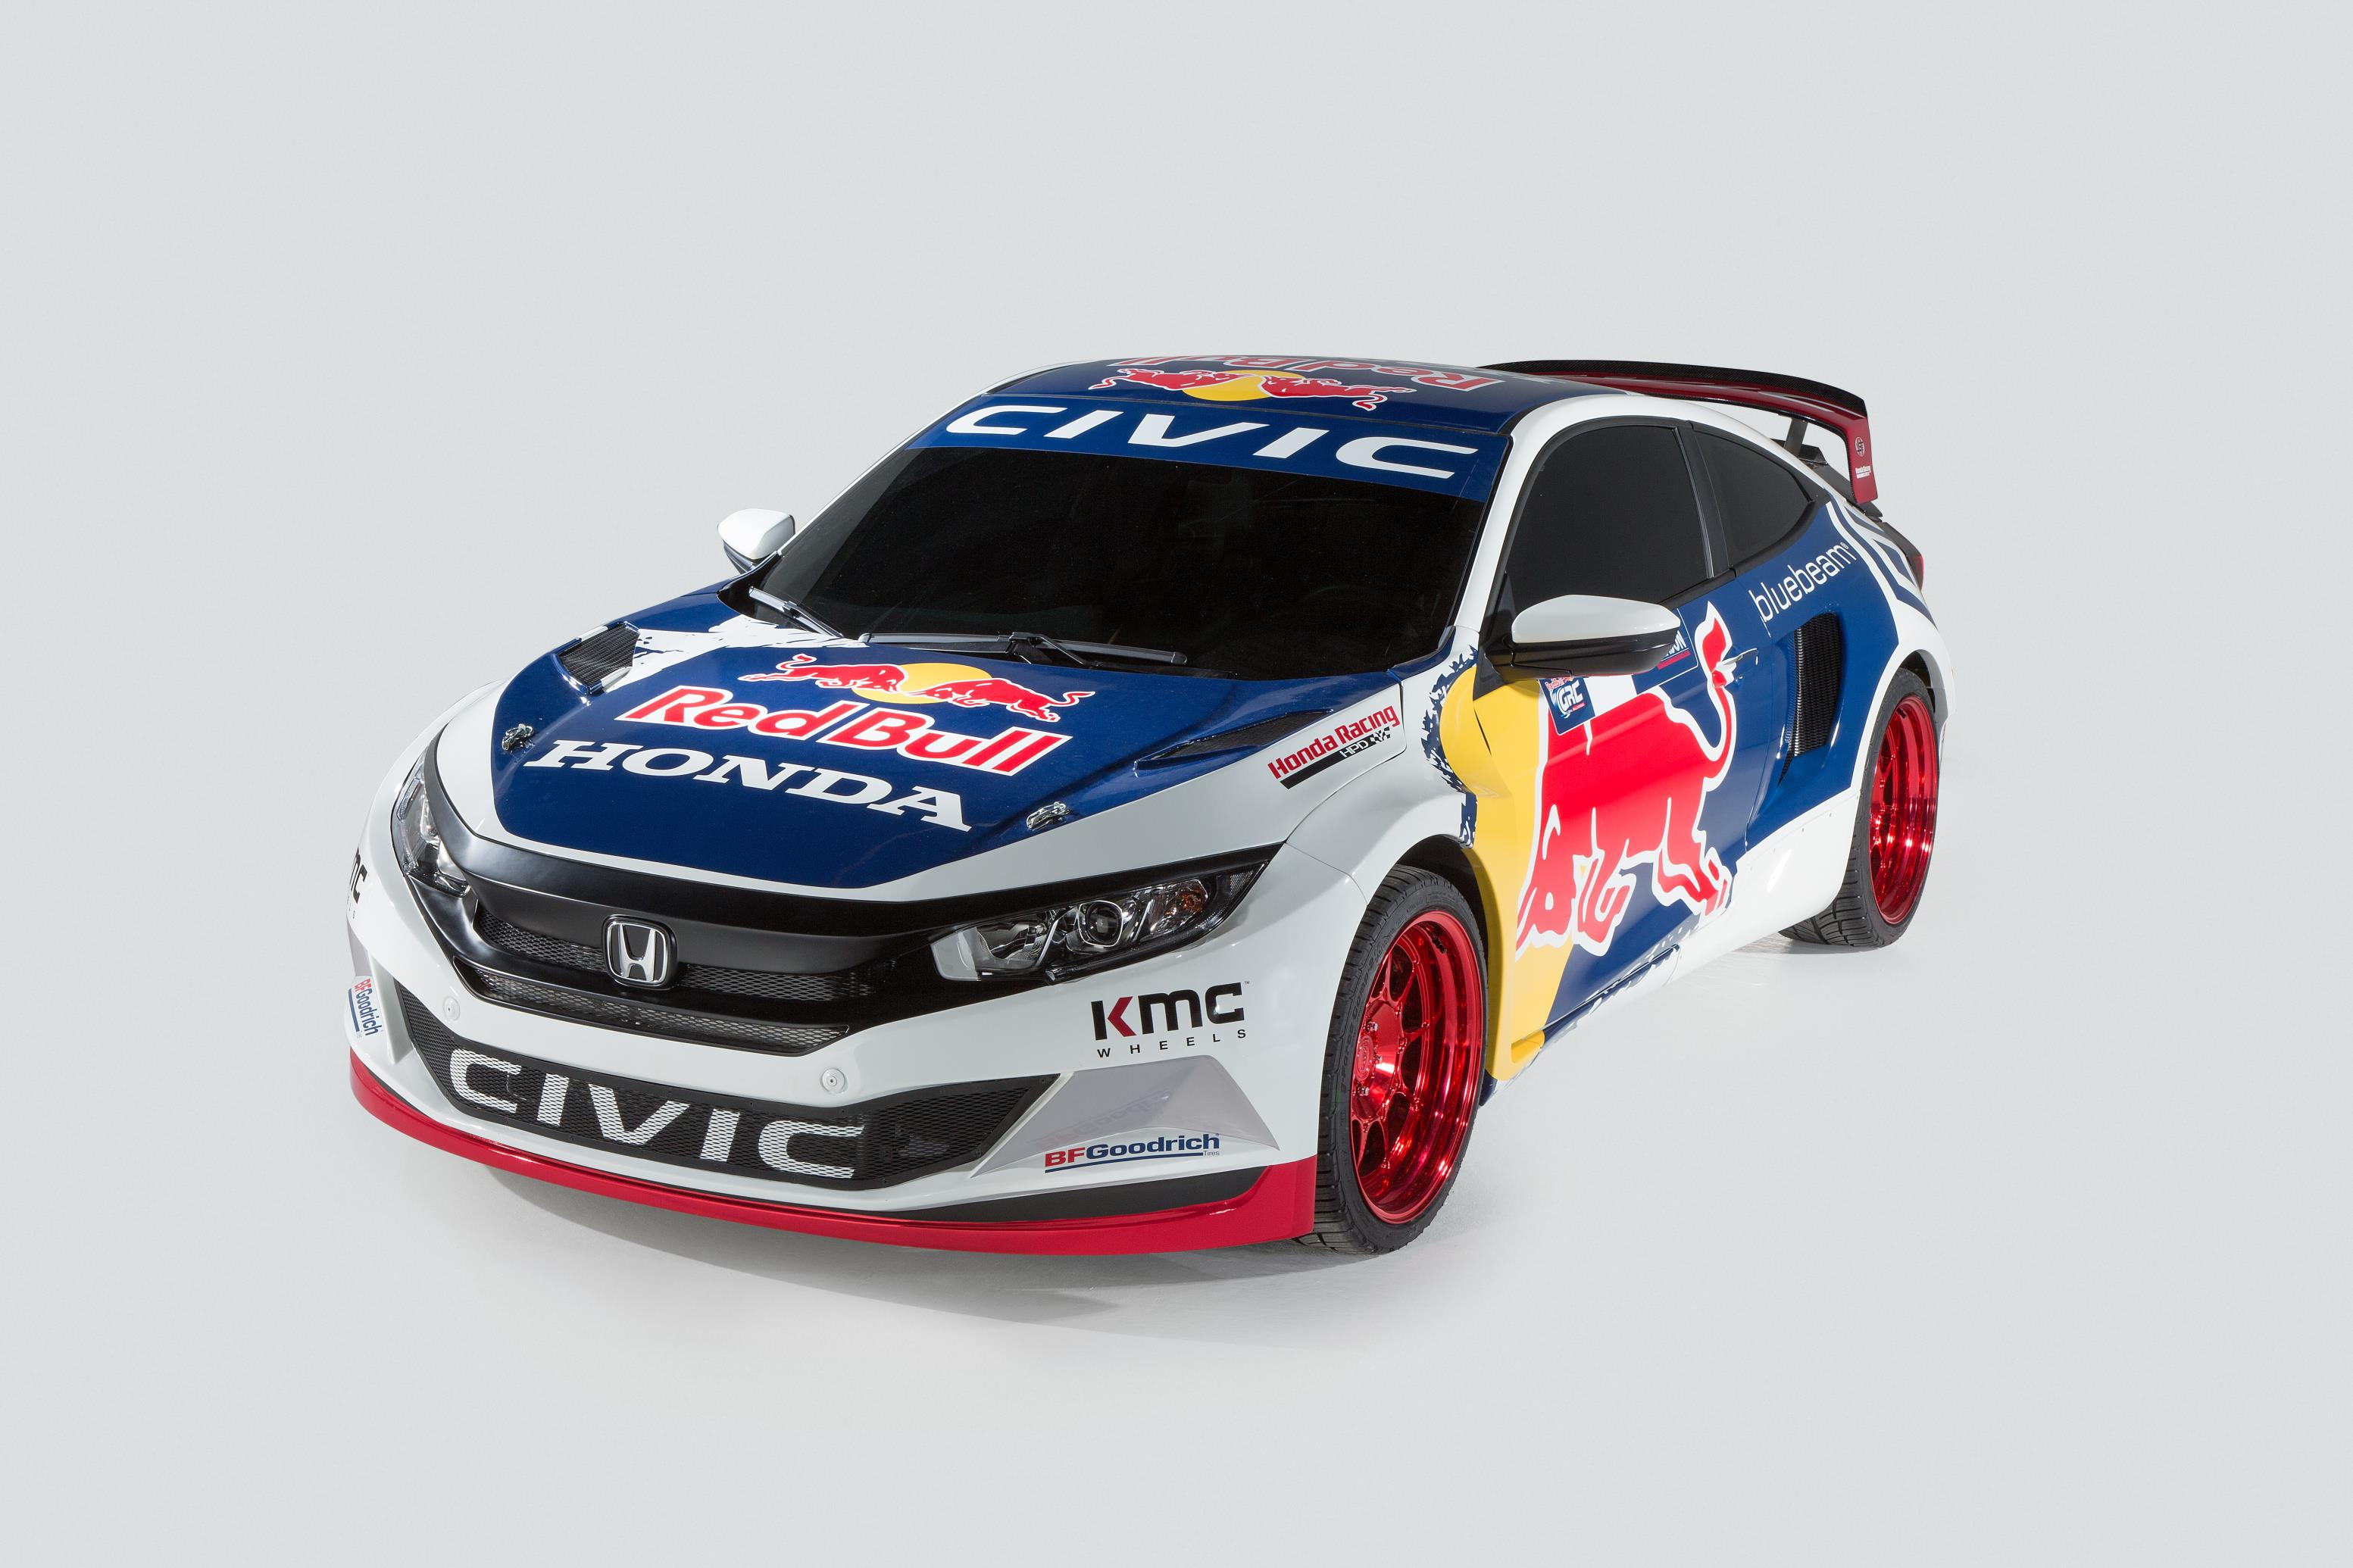 Grc Civic >> 2016 Honda Civic Coupe Red Bull Global Rallycross Race Car Debuts in New York - autoevolution